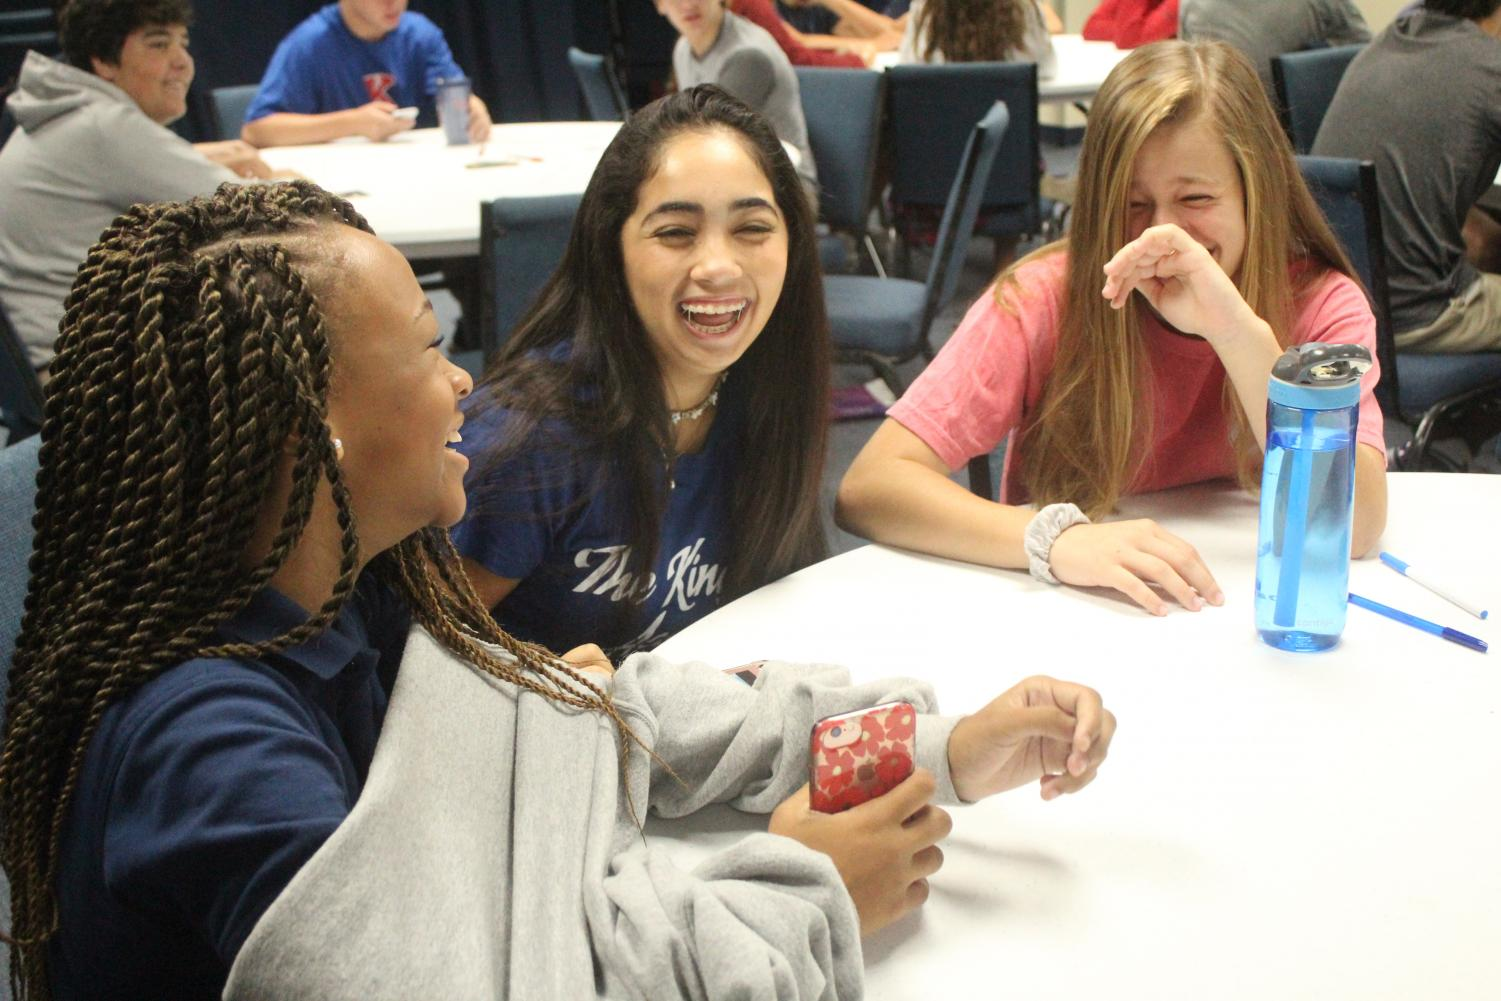 Bree Taylor, Bella Torres, and Makayla Martin enjoying their time of faith and fellowship at one80.